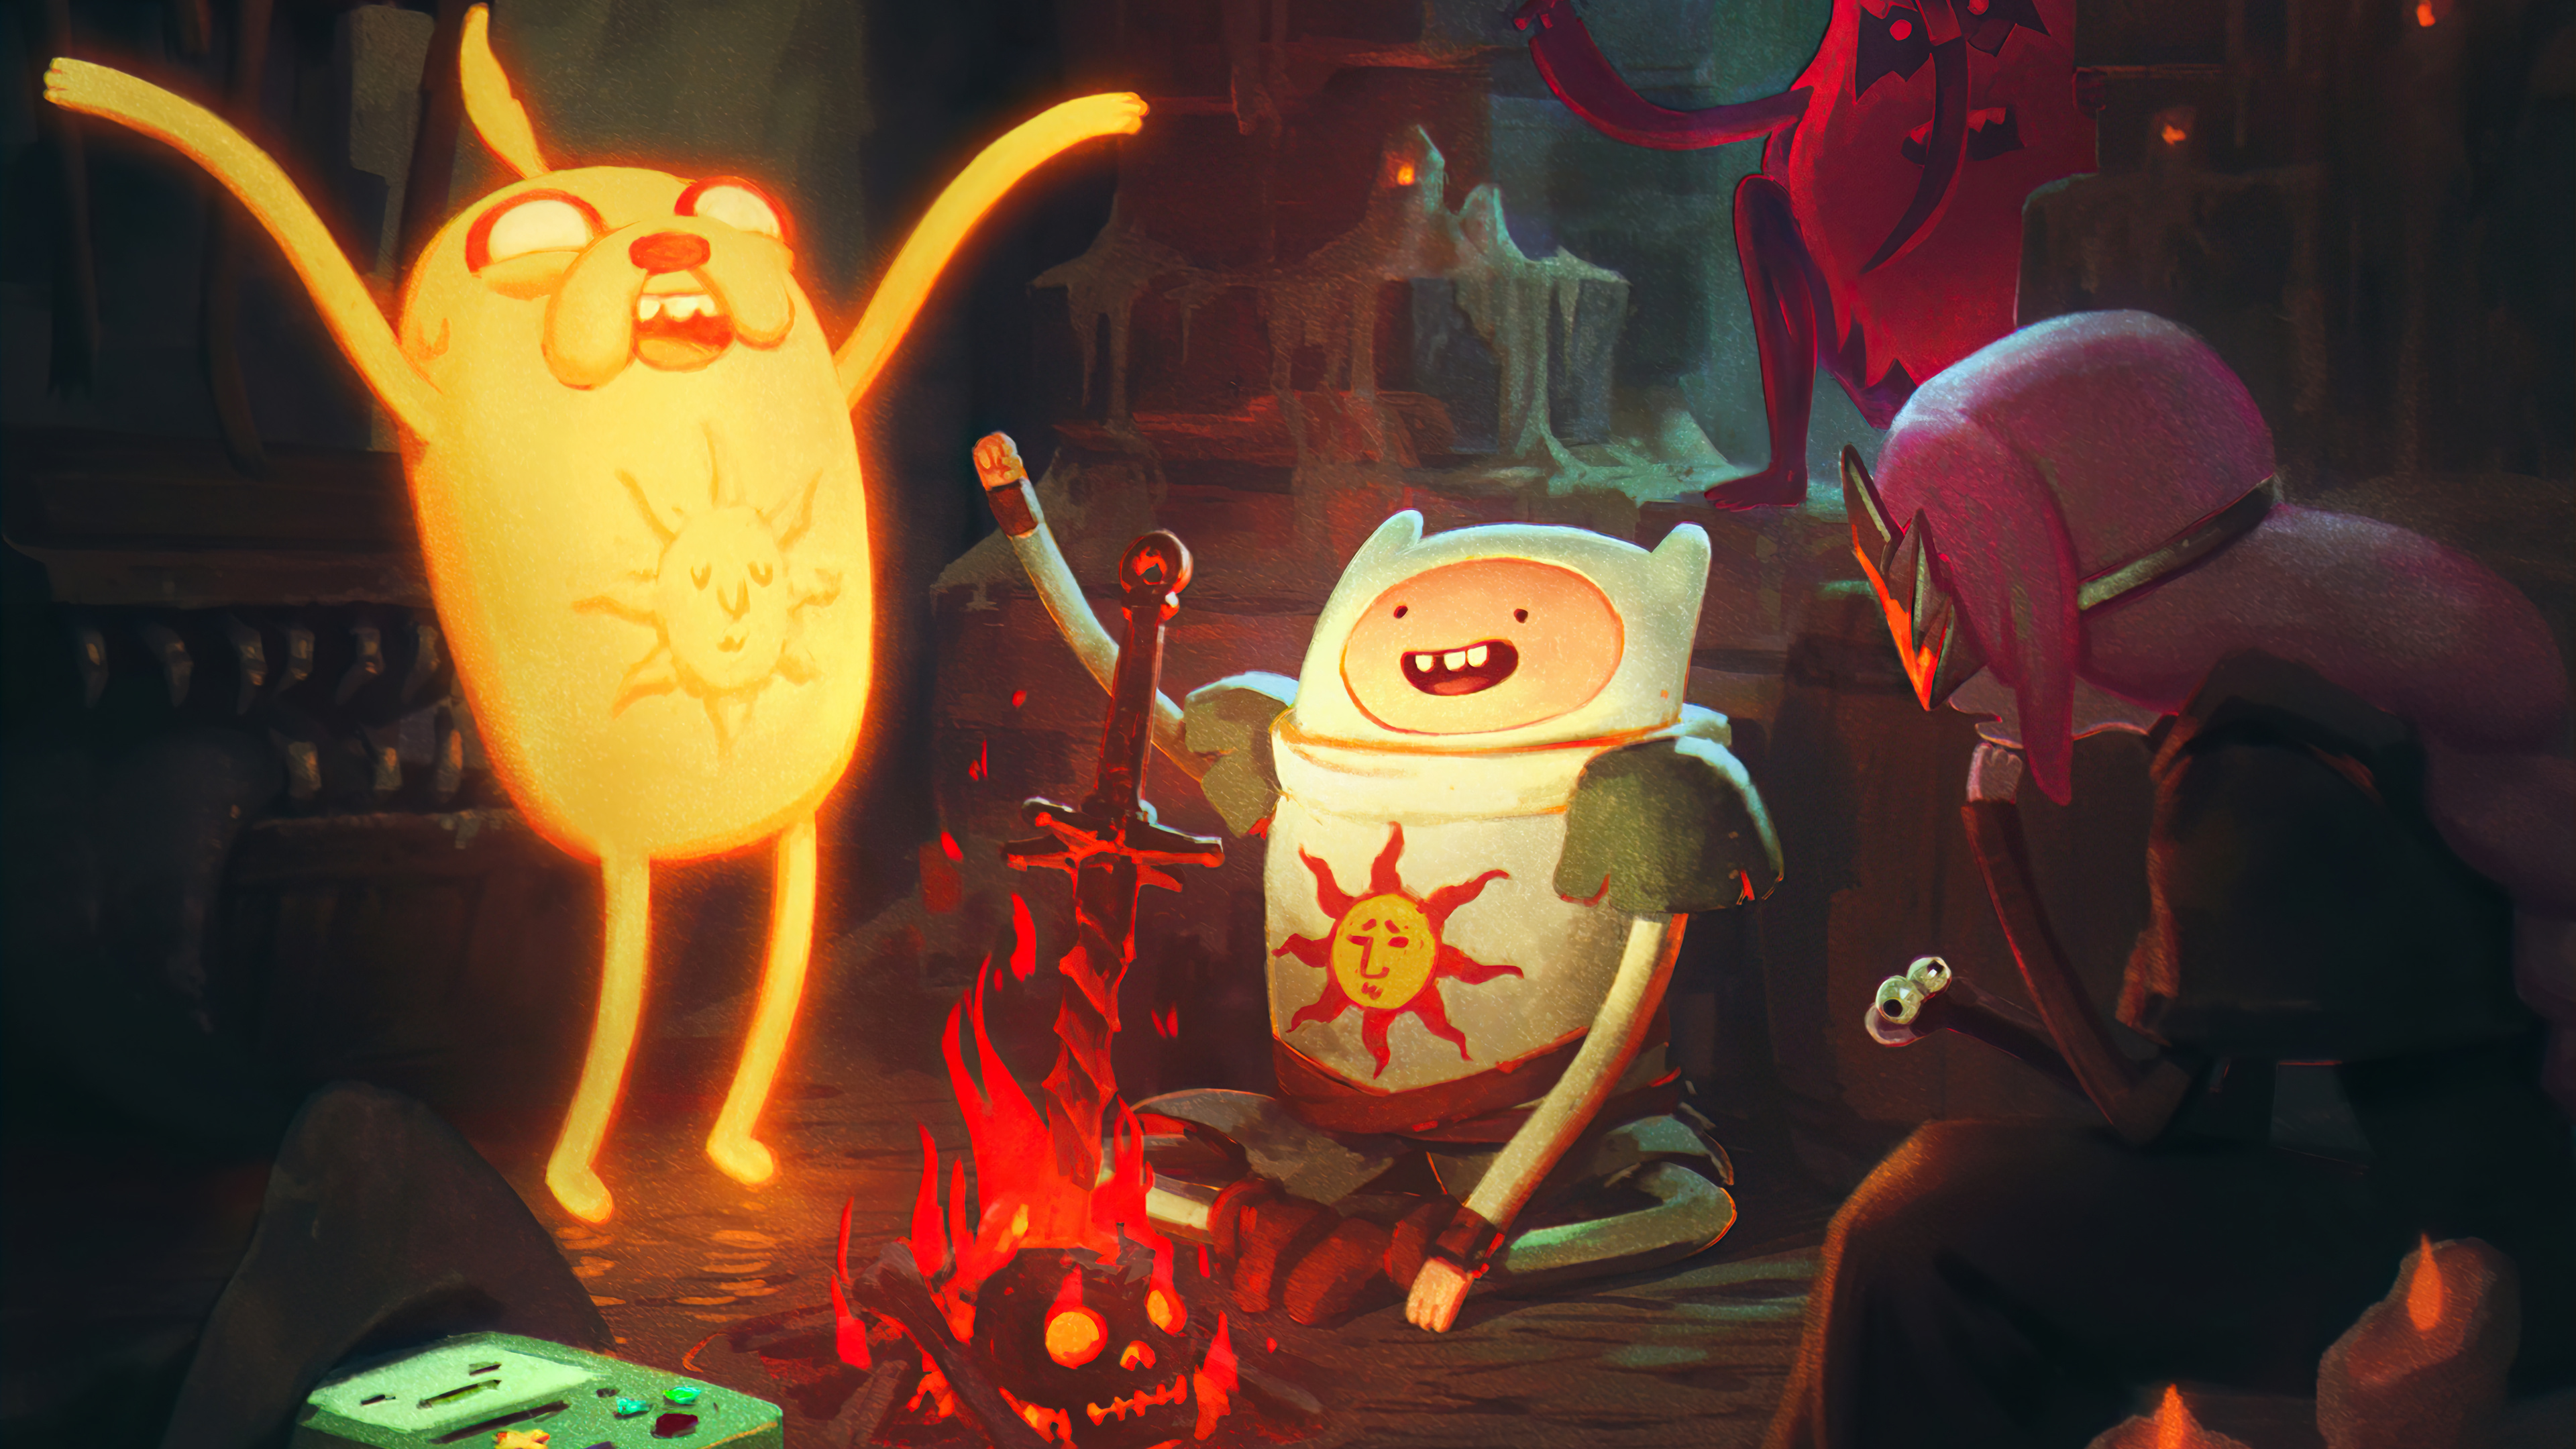 Wallpaper Adventure time Characters